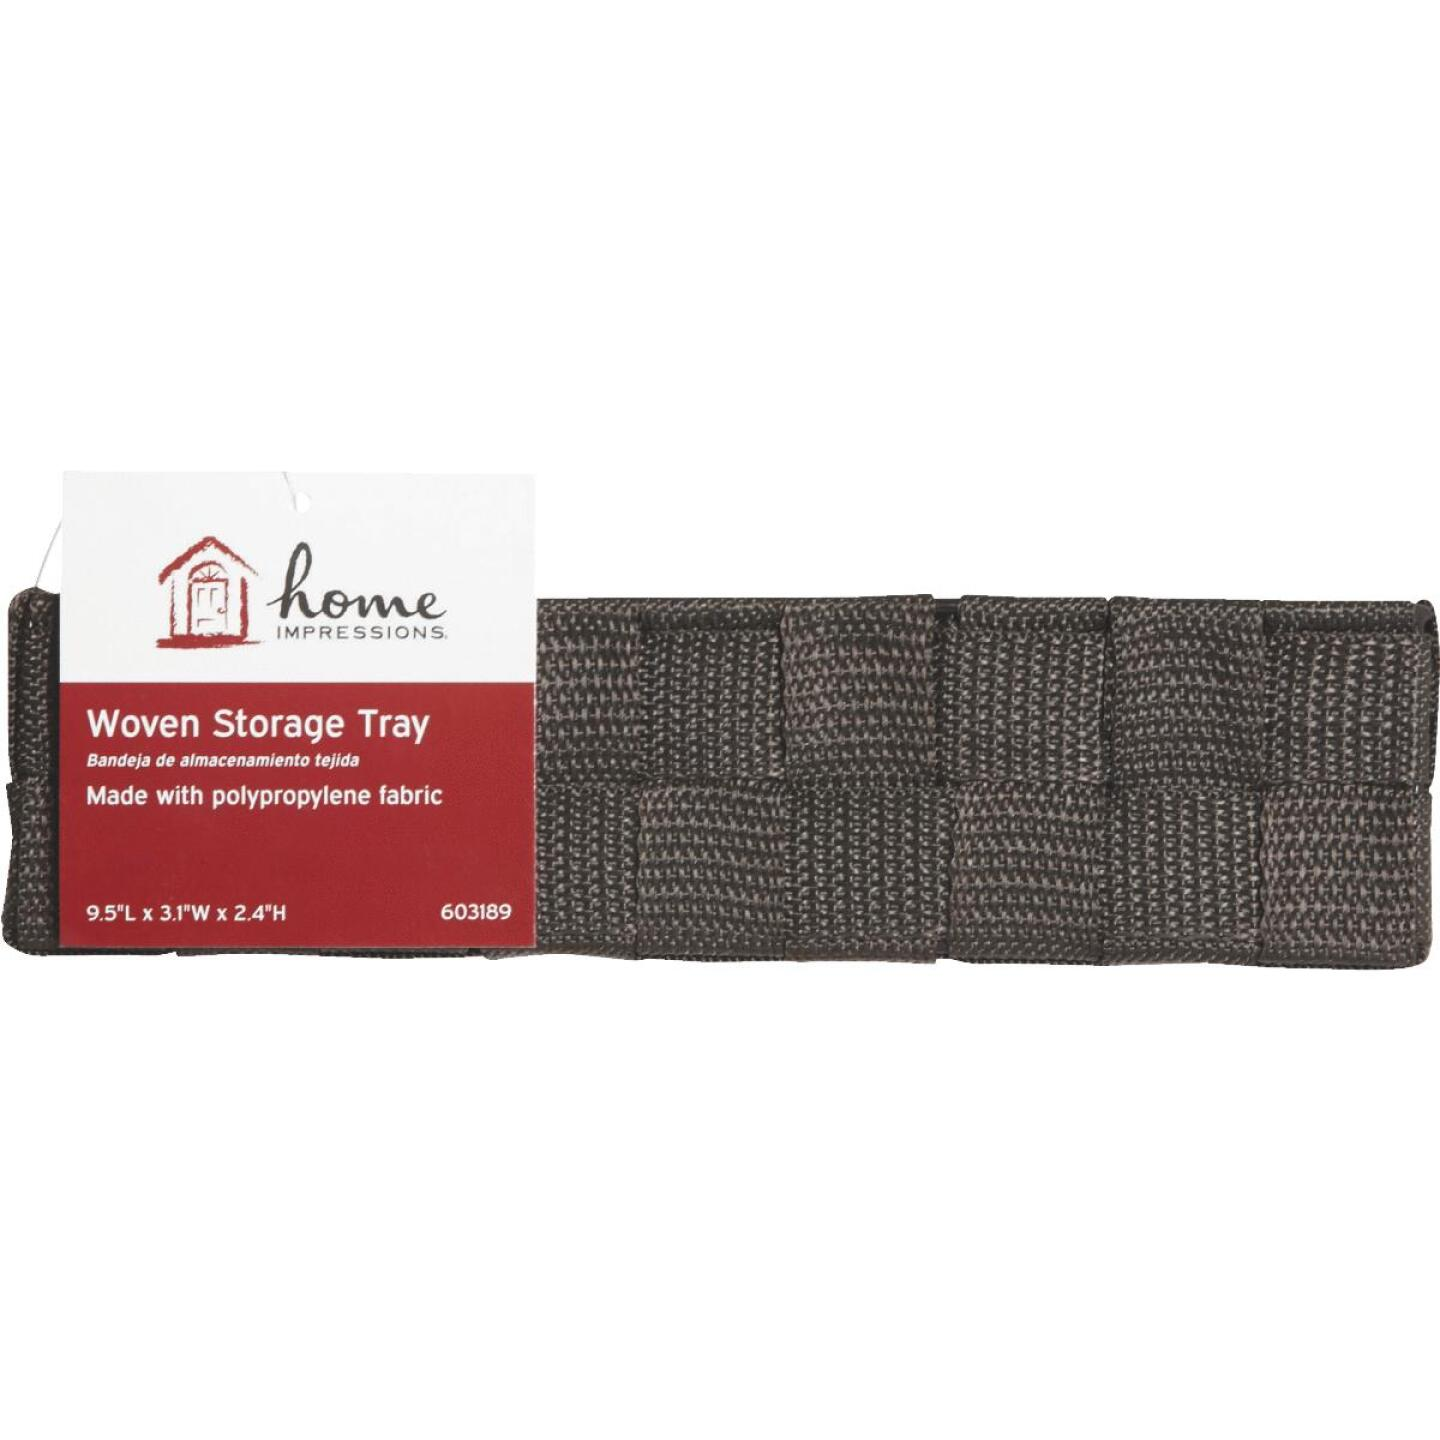 Home Impressions 3.25 In. W. x 2.25 In. H. x 9.5 In. L. Woven Storage Tray, Brown Image 2